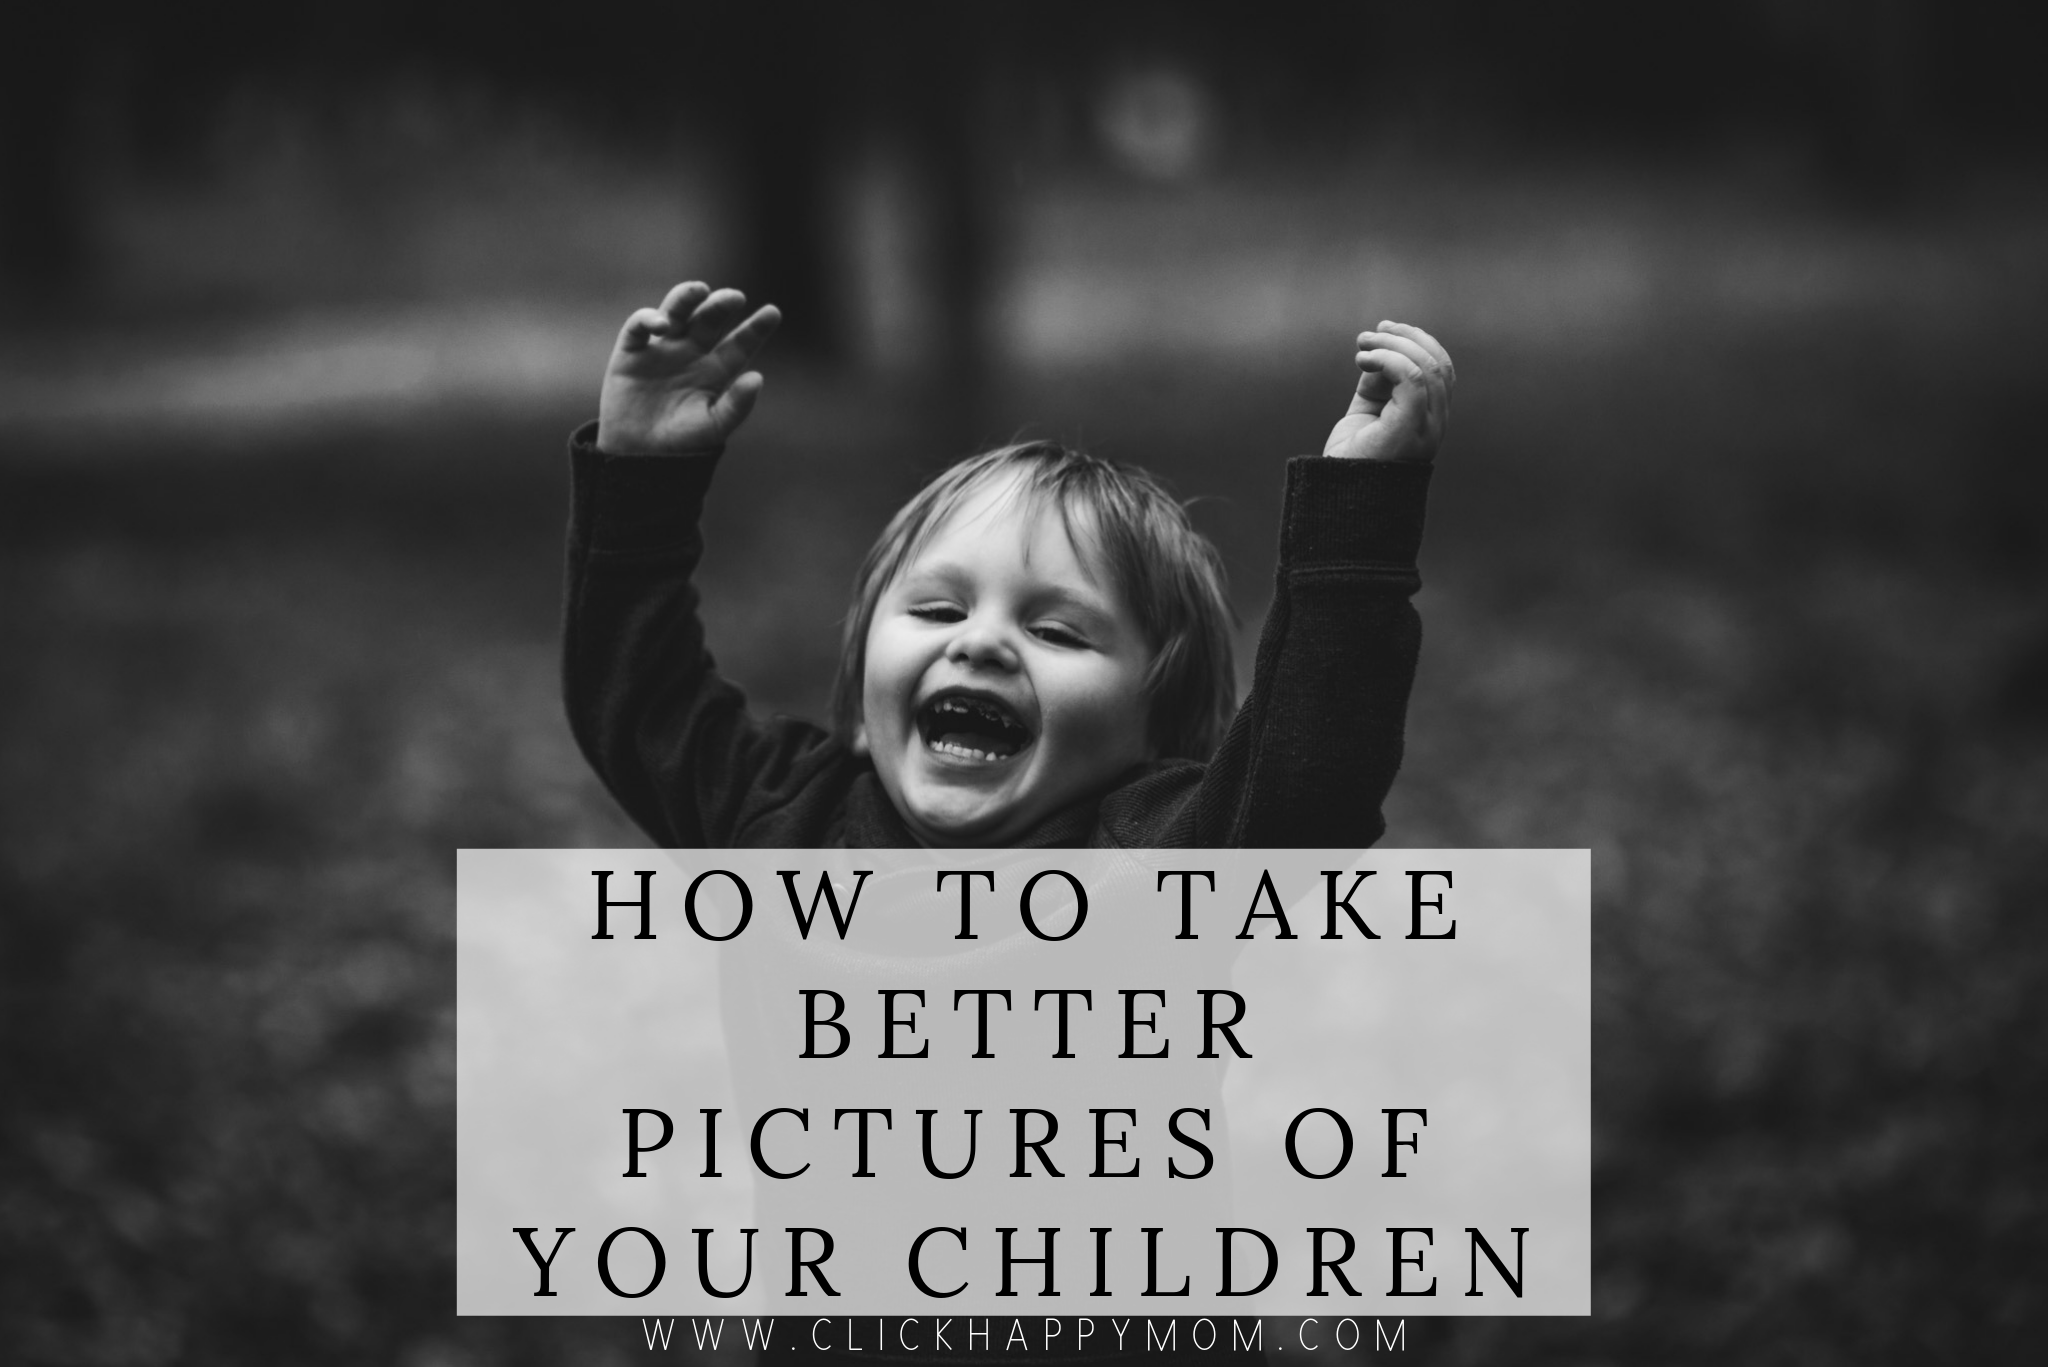 How to Take Better Pictures of Your Children